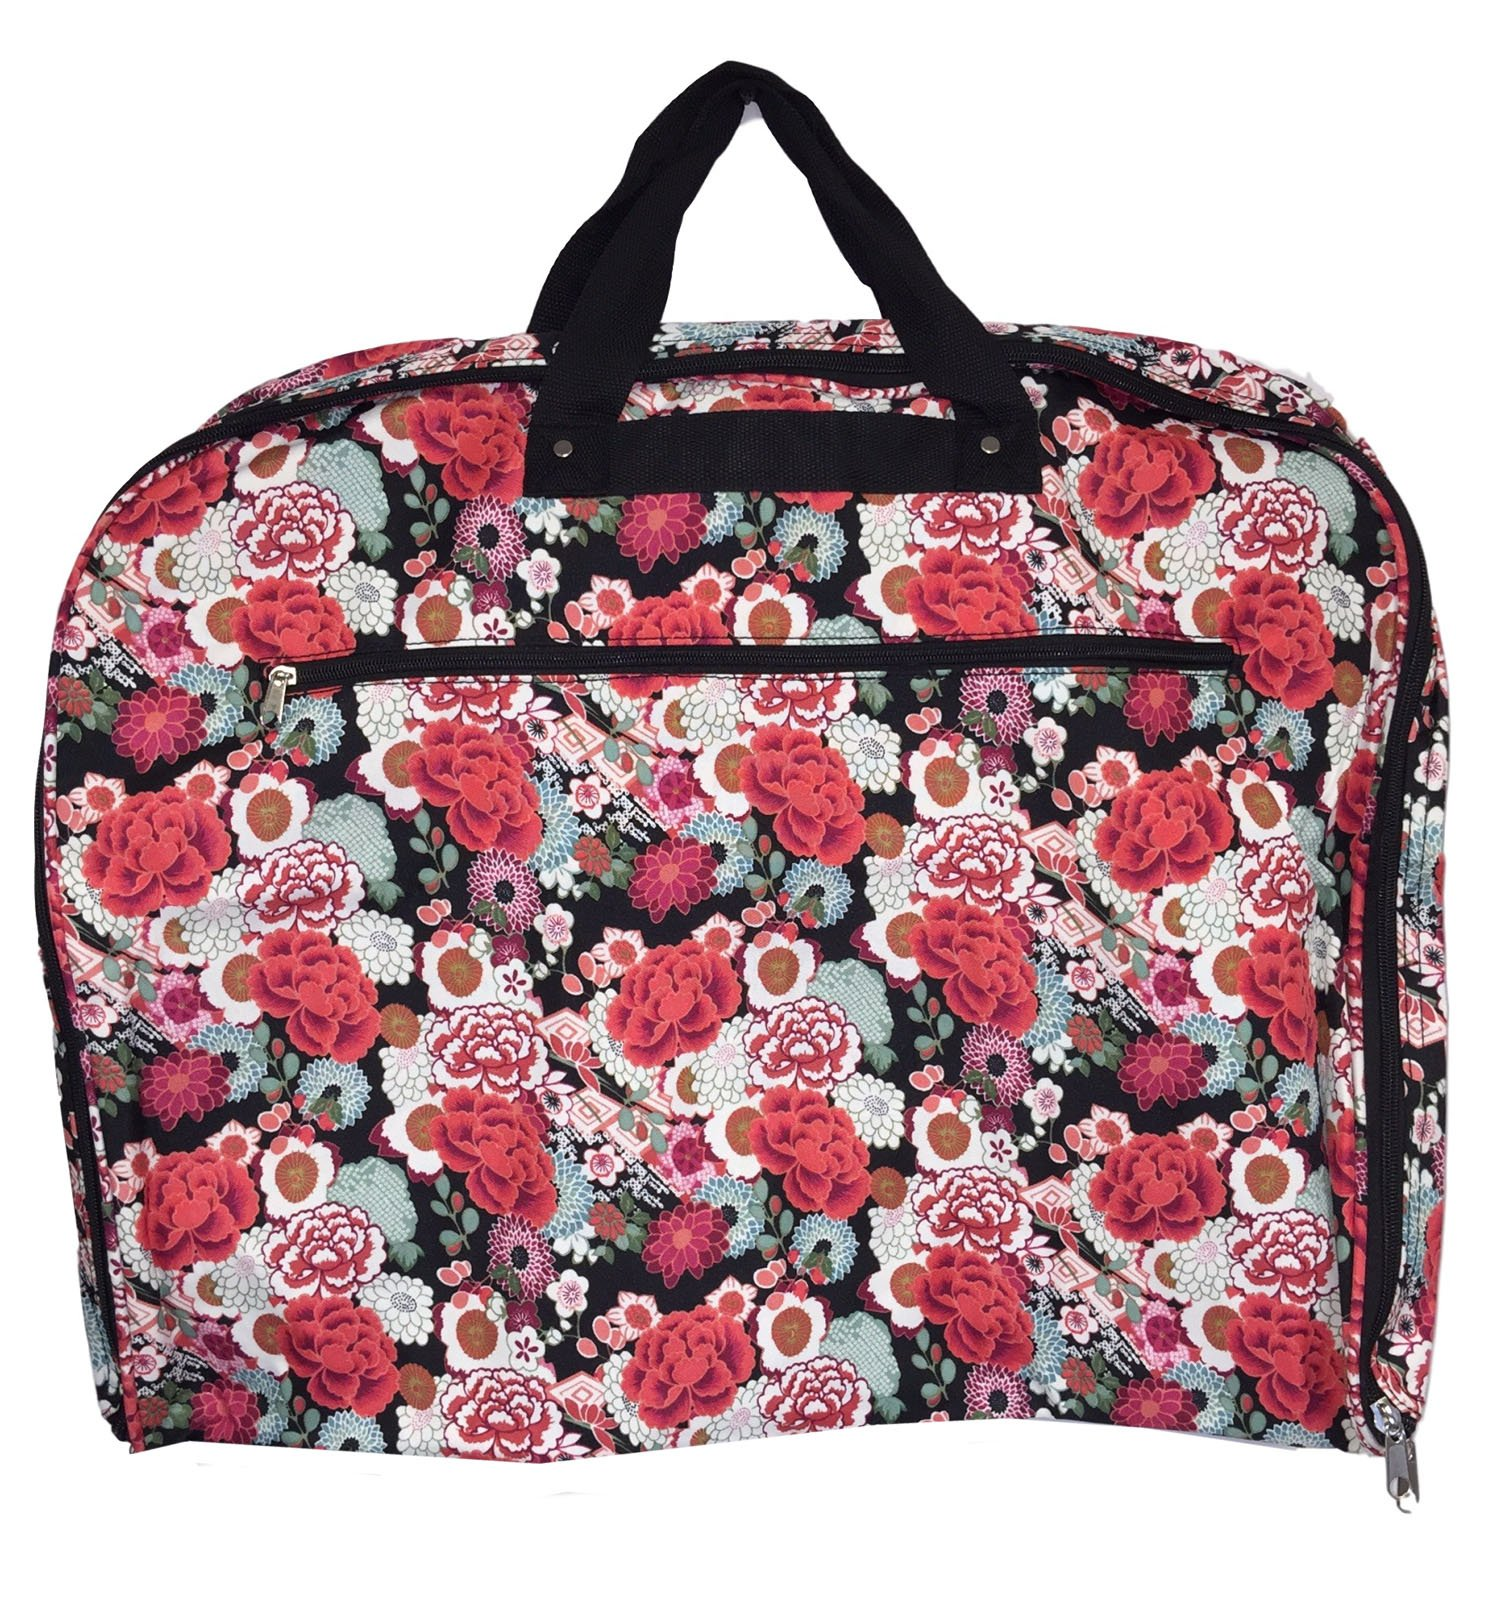 Fashionable Travel Garment Bags with Extended Hanger - Custom Embroidery Available (Flora Garden)